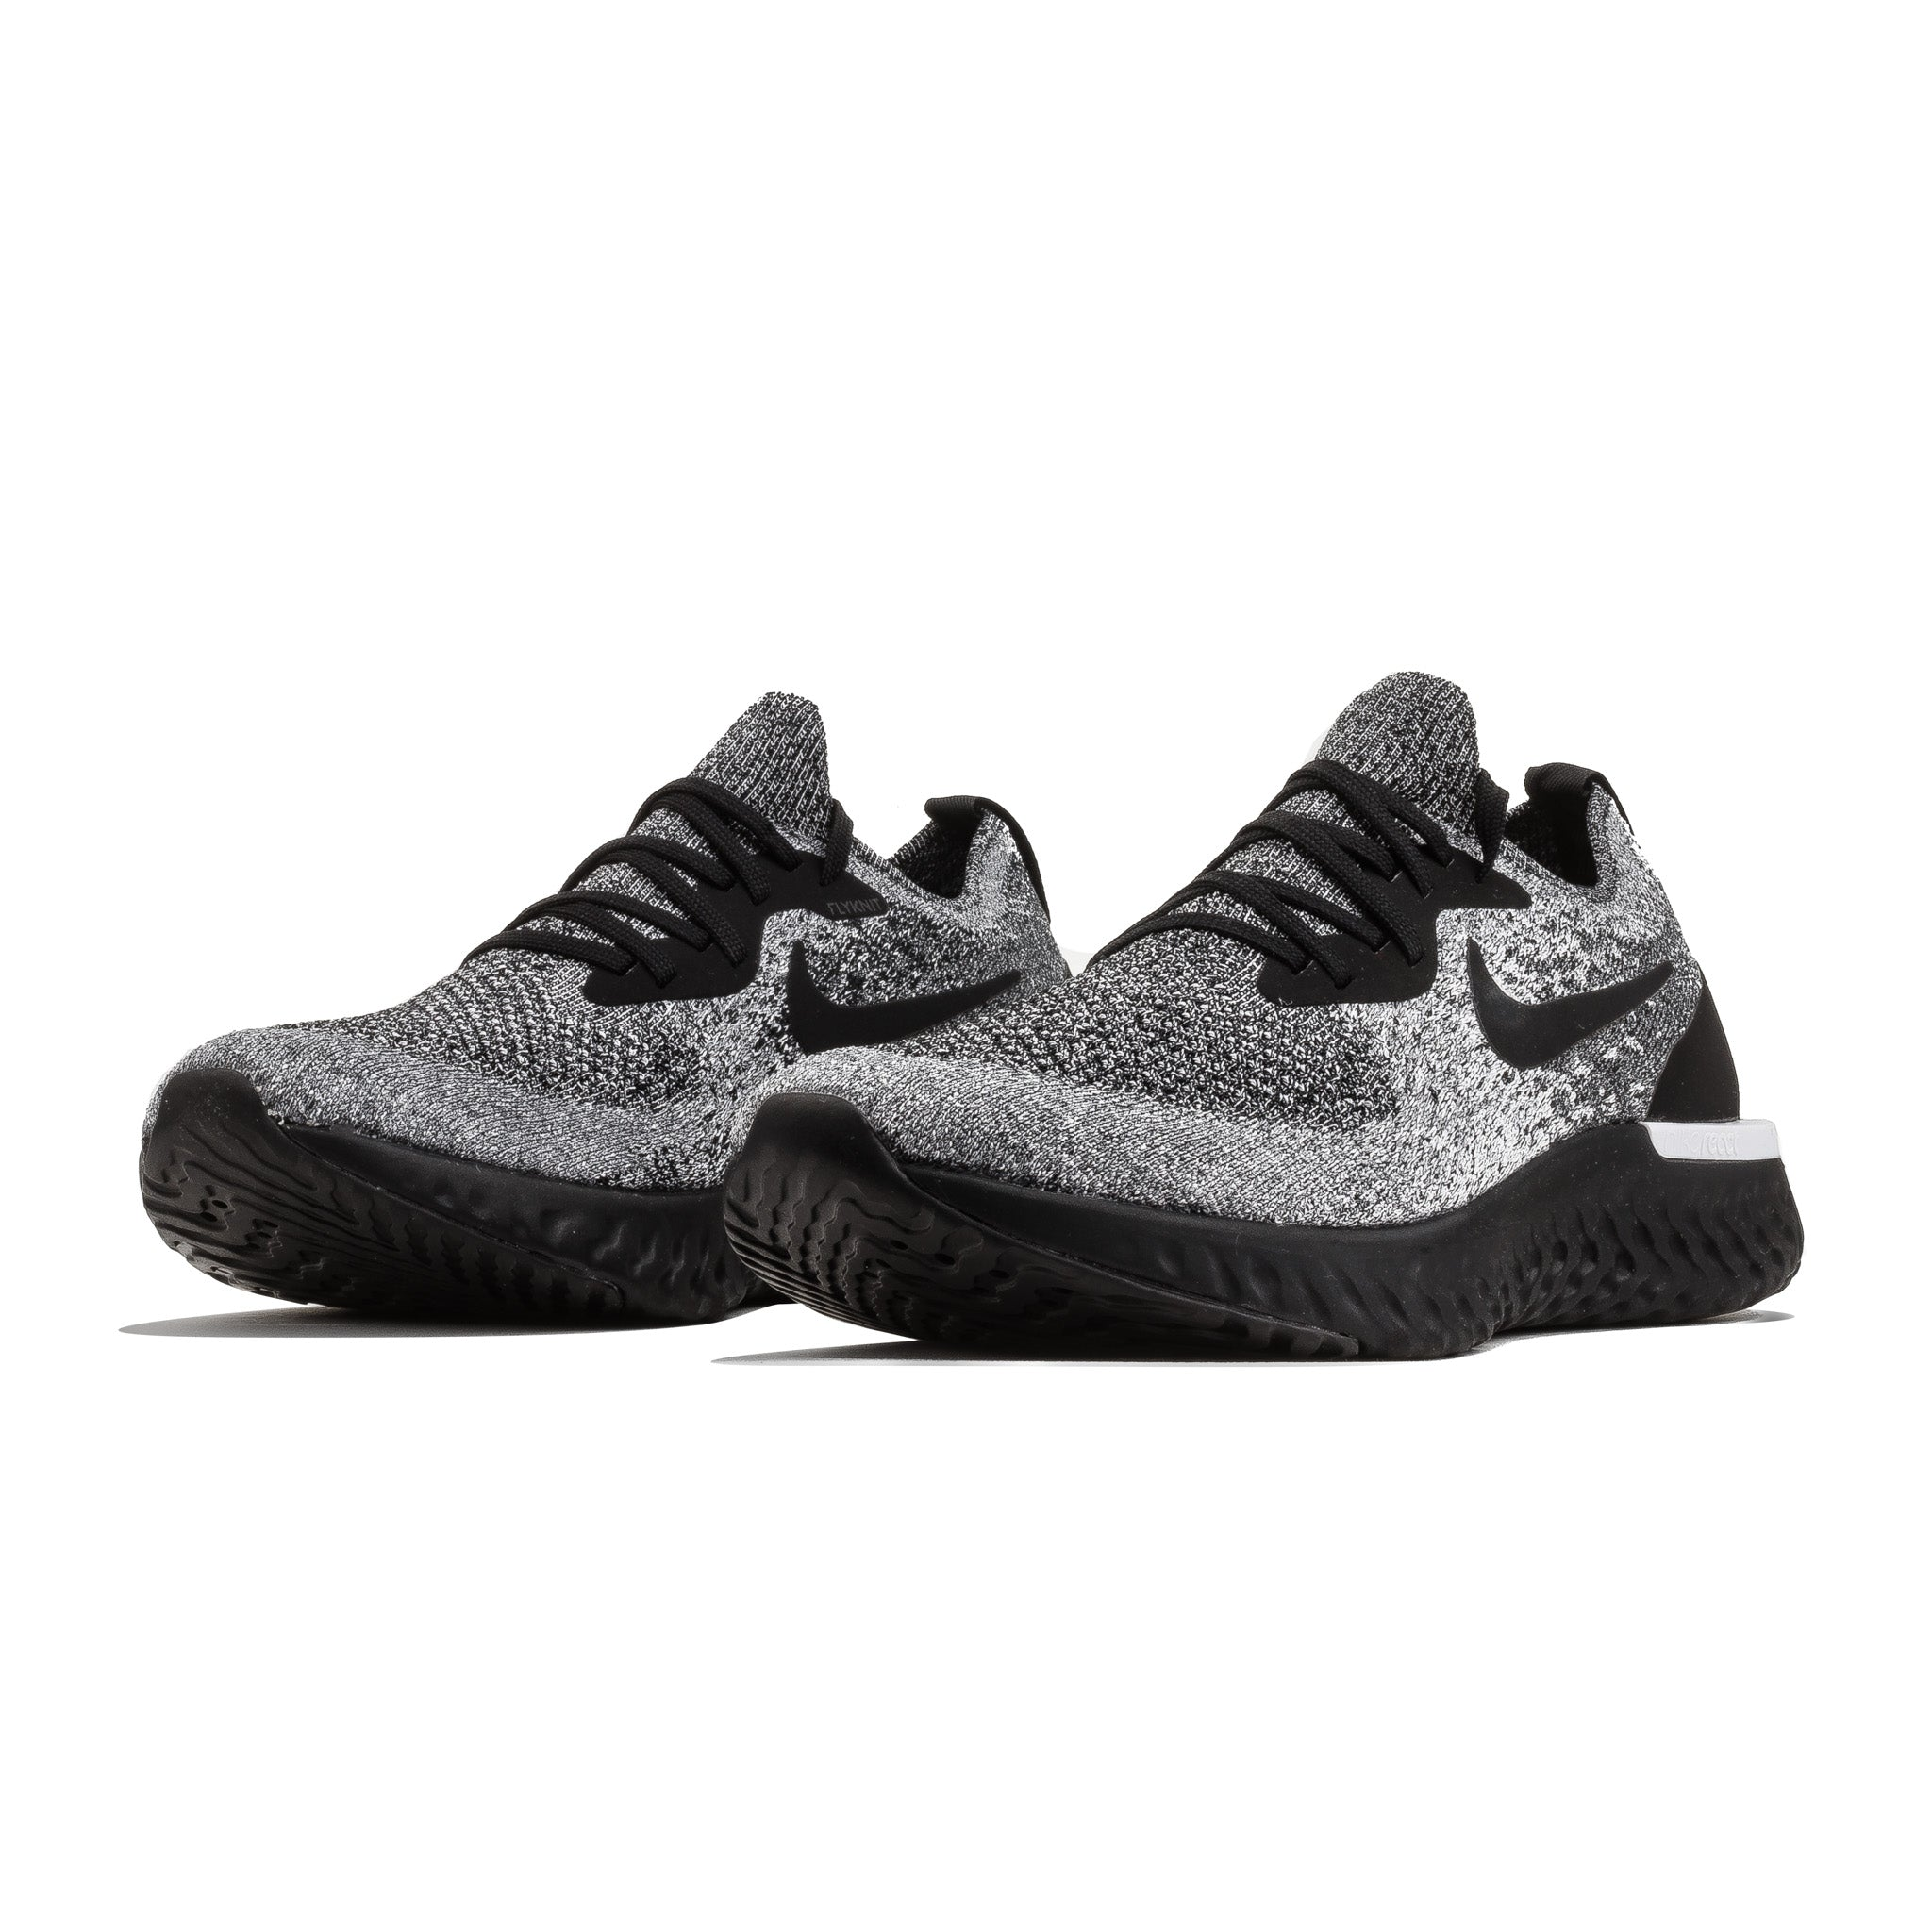 009ab3253819 Nike Epic React Flyknit AQ0067-011 Black – Capsule Online